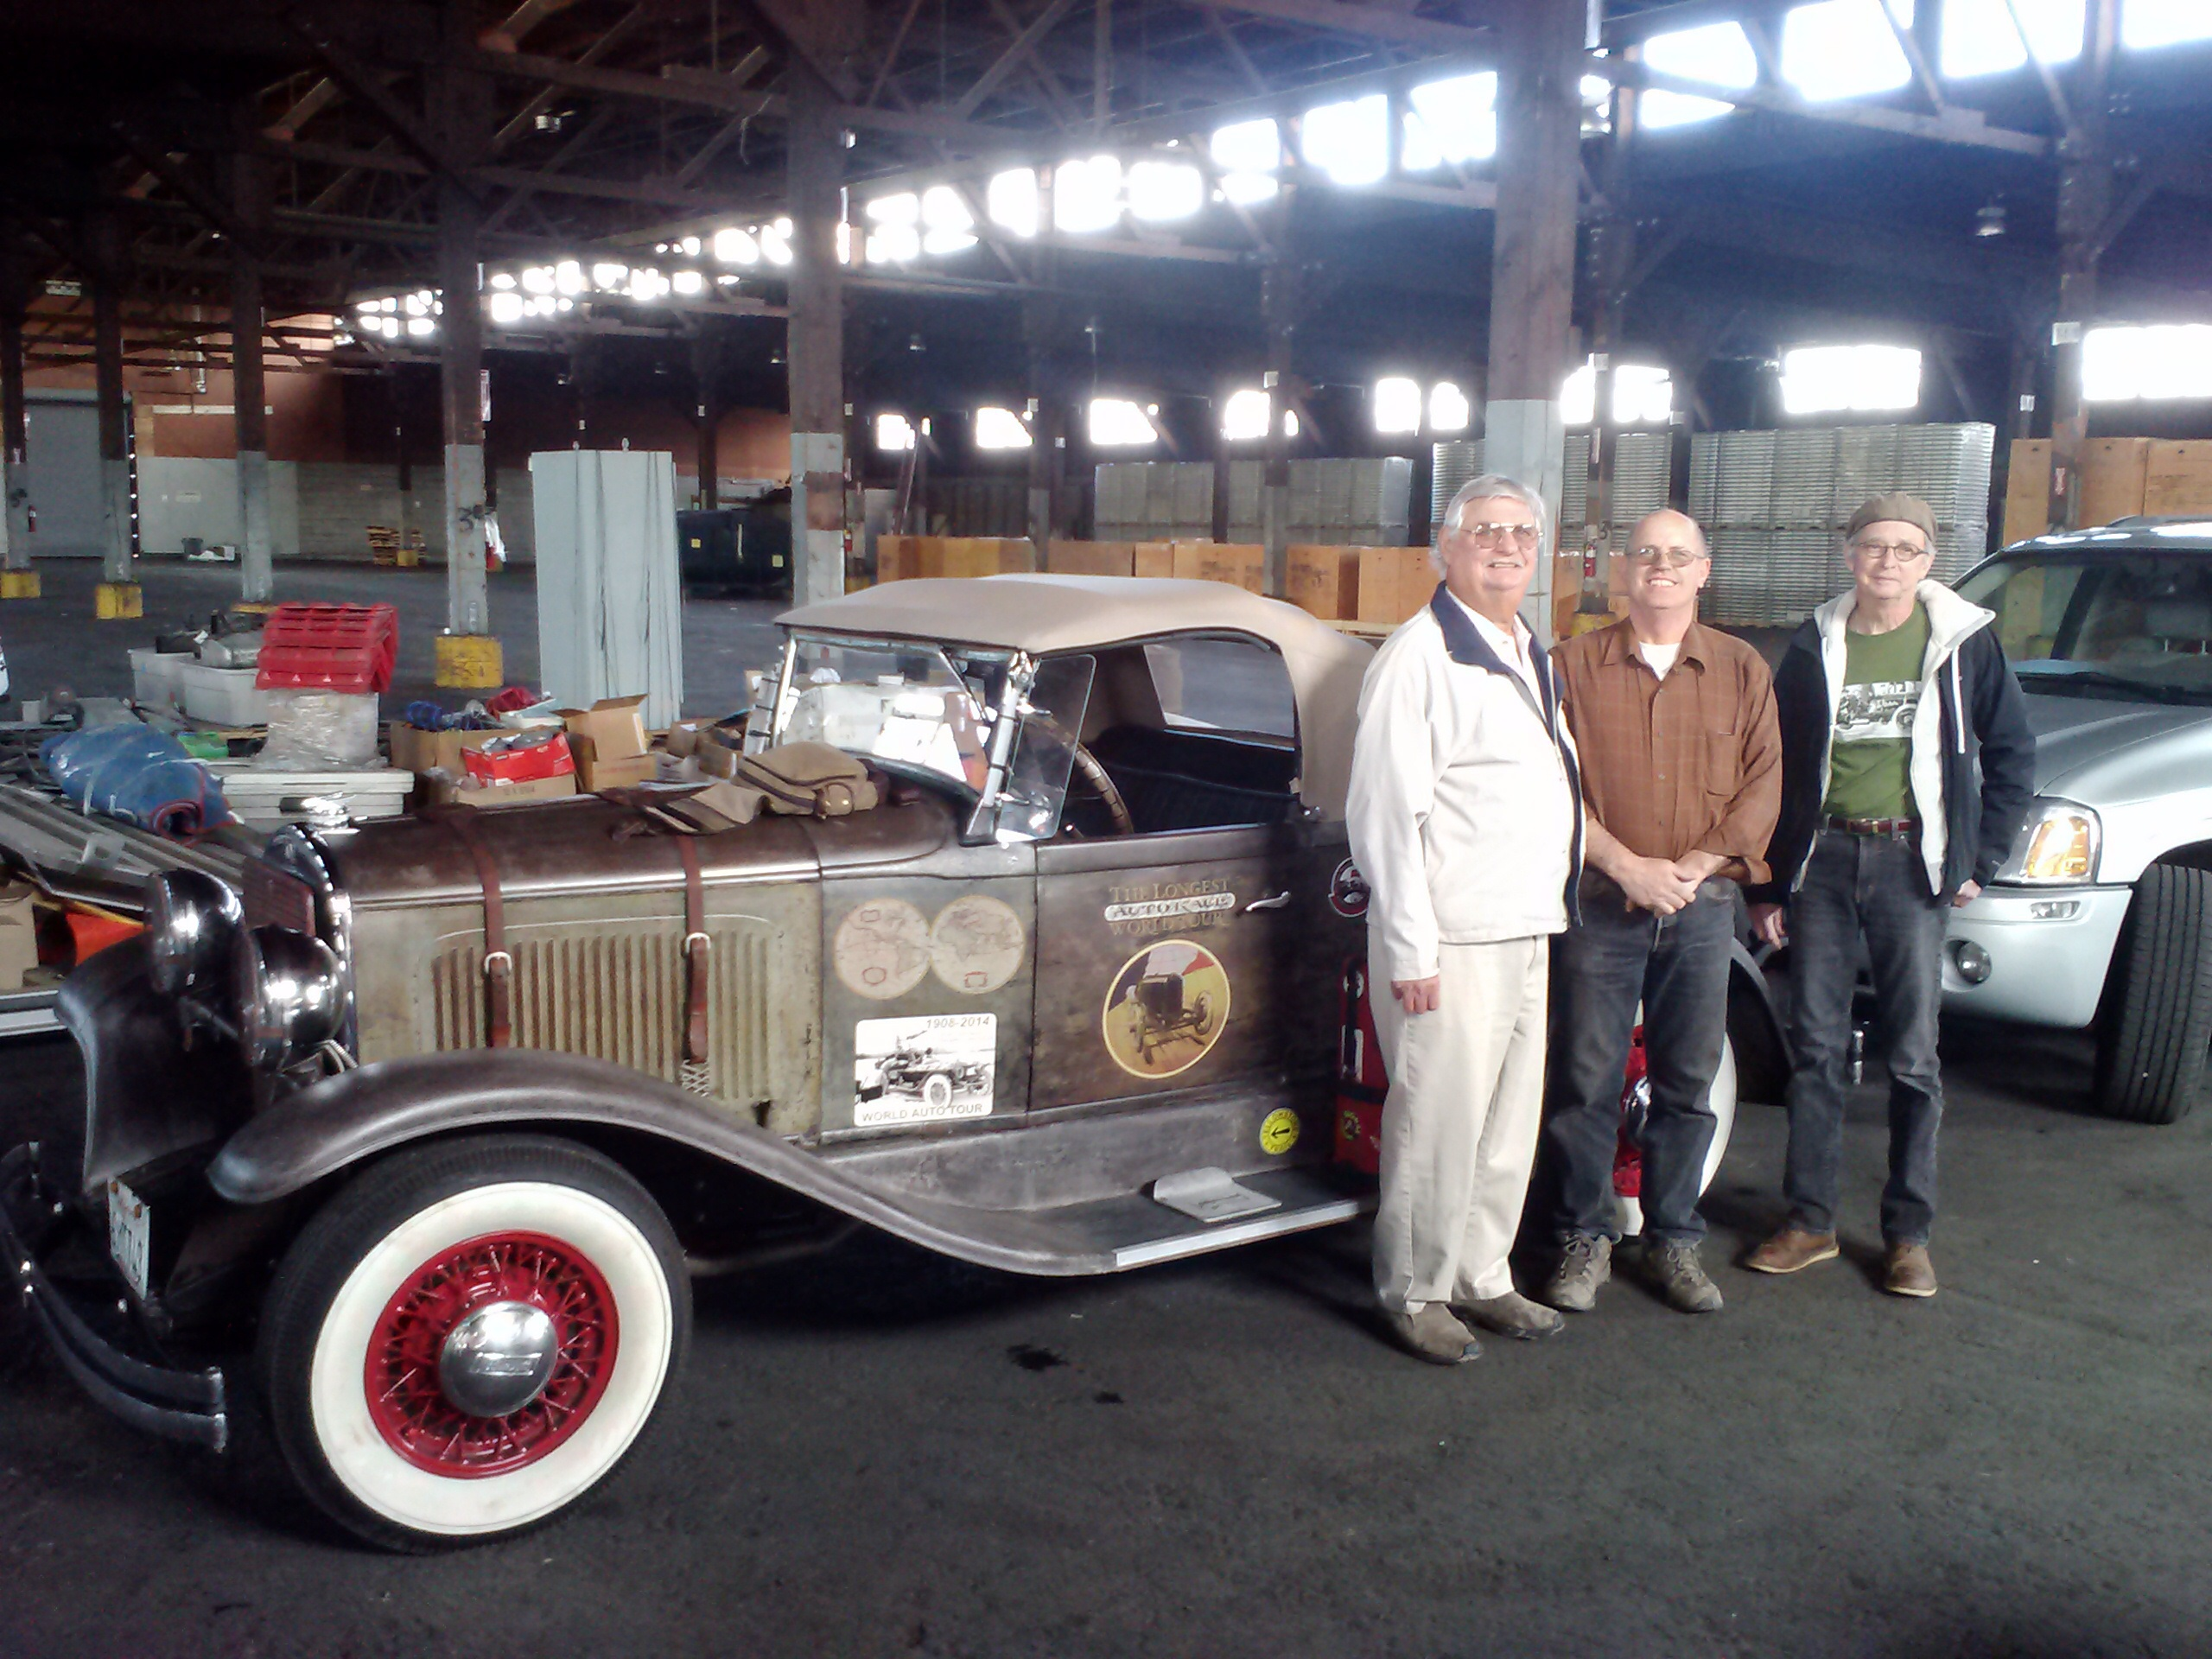 Leo, Luke and me with my 1928 Plymouth...our fourth tour member, Eileen Was not available for pic.